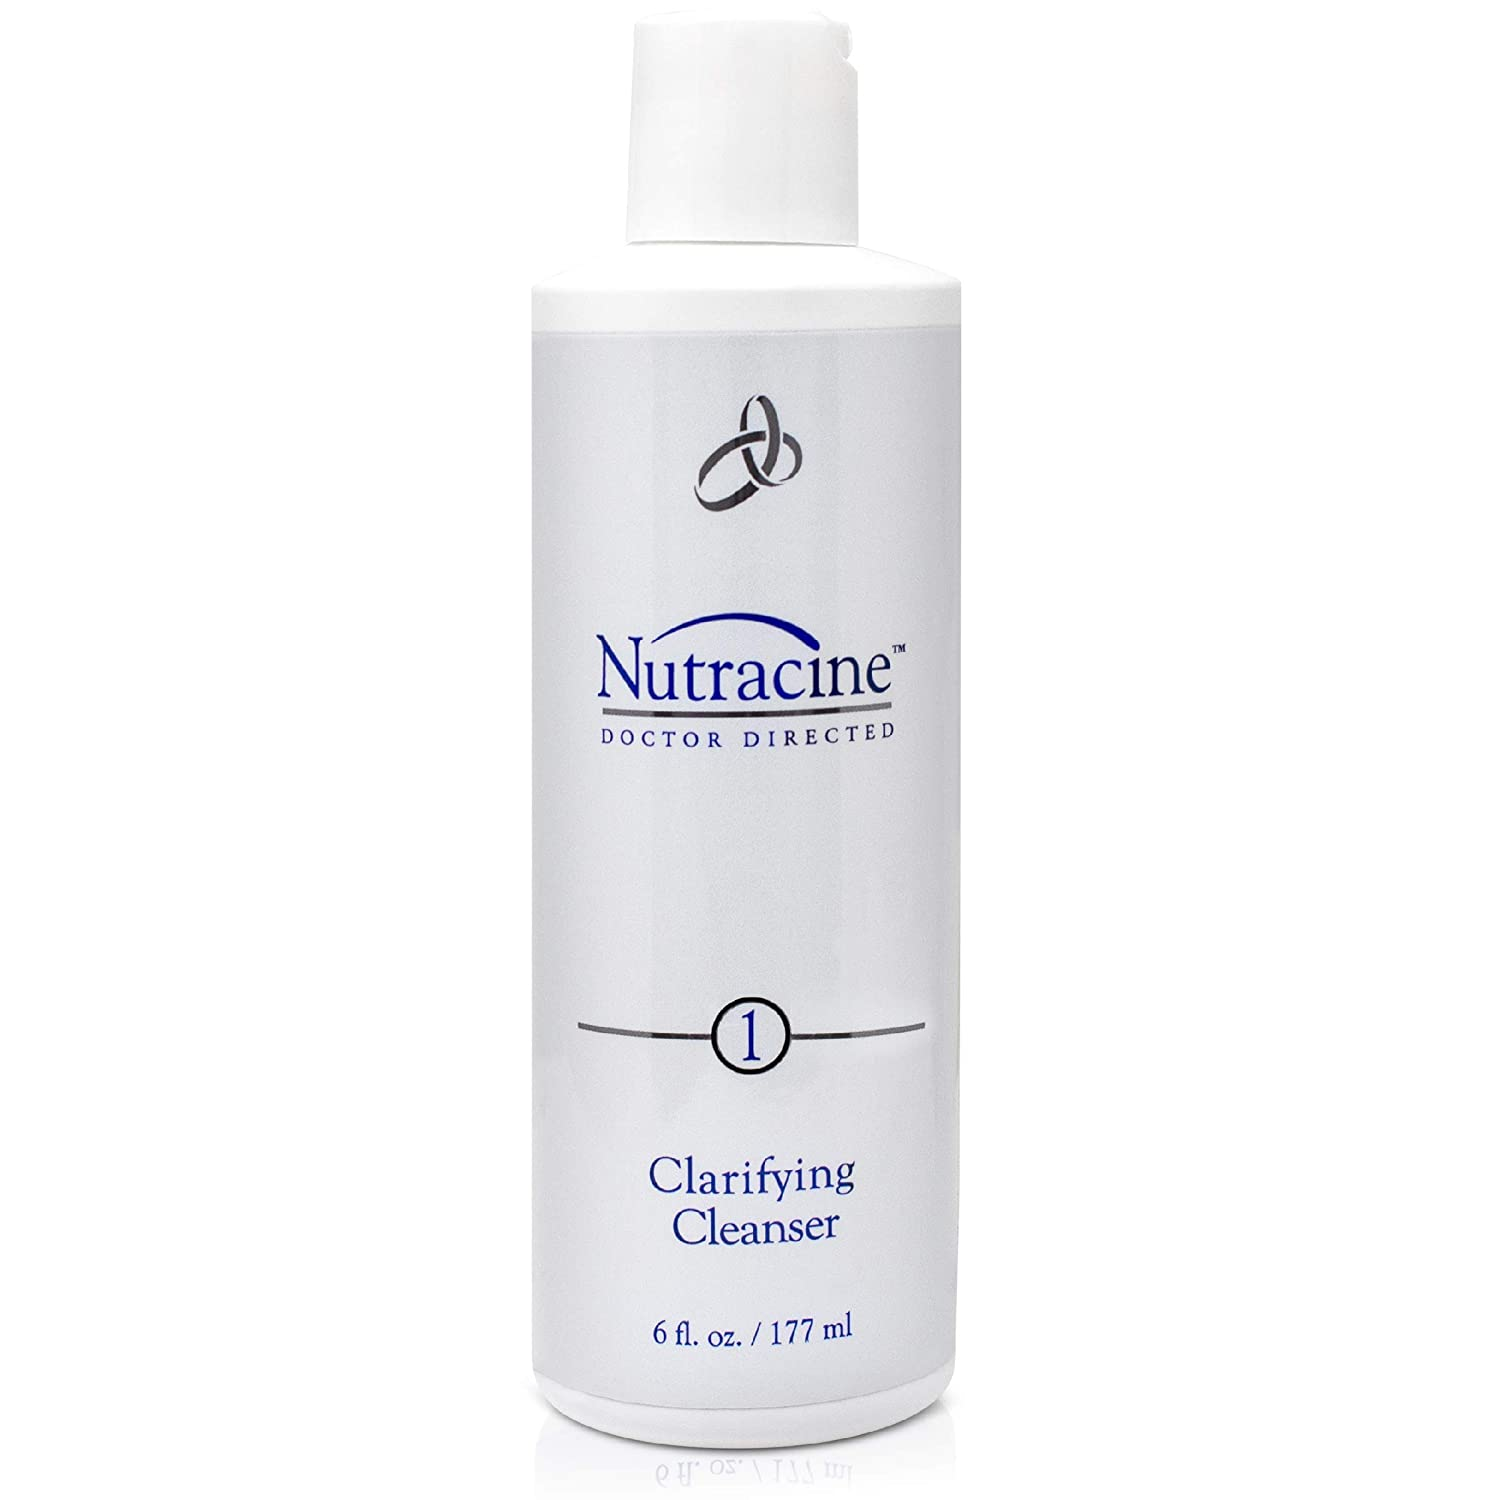 Nutracine Gentle Hydrating Facial Clarifying Cleanser Combines Green Tea antioxidant, anti-inflammatory and fruit extracts to easily remove makeup, deep Impurities (oil and fragrance free). 6fl oz